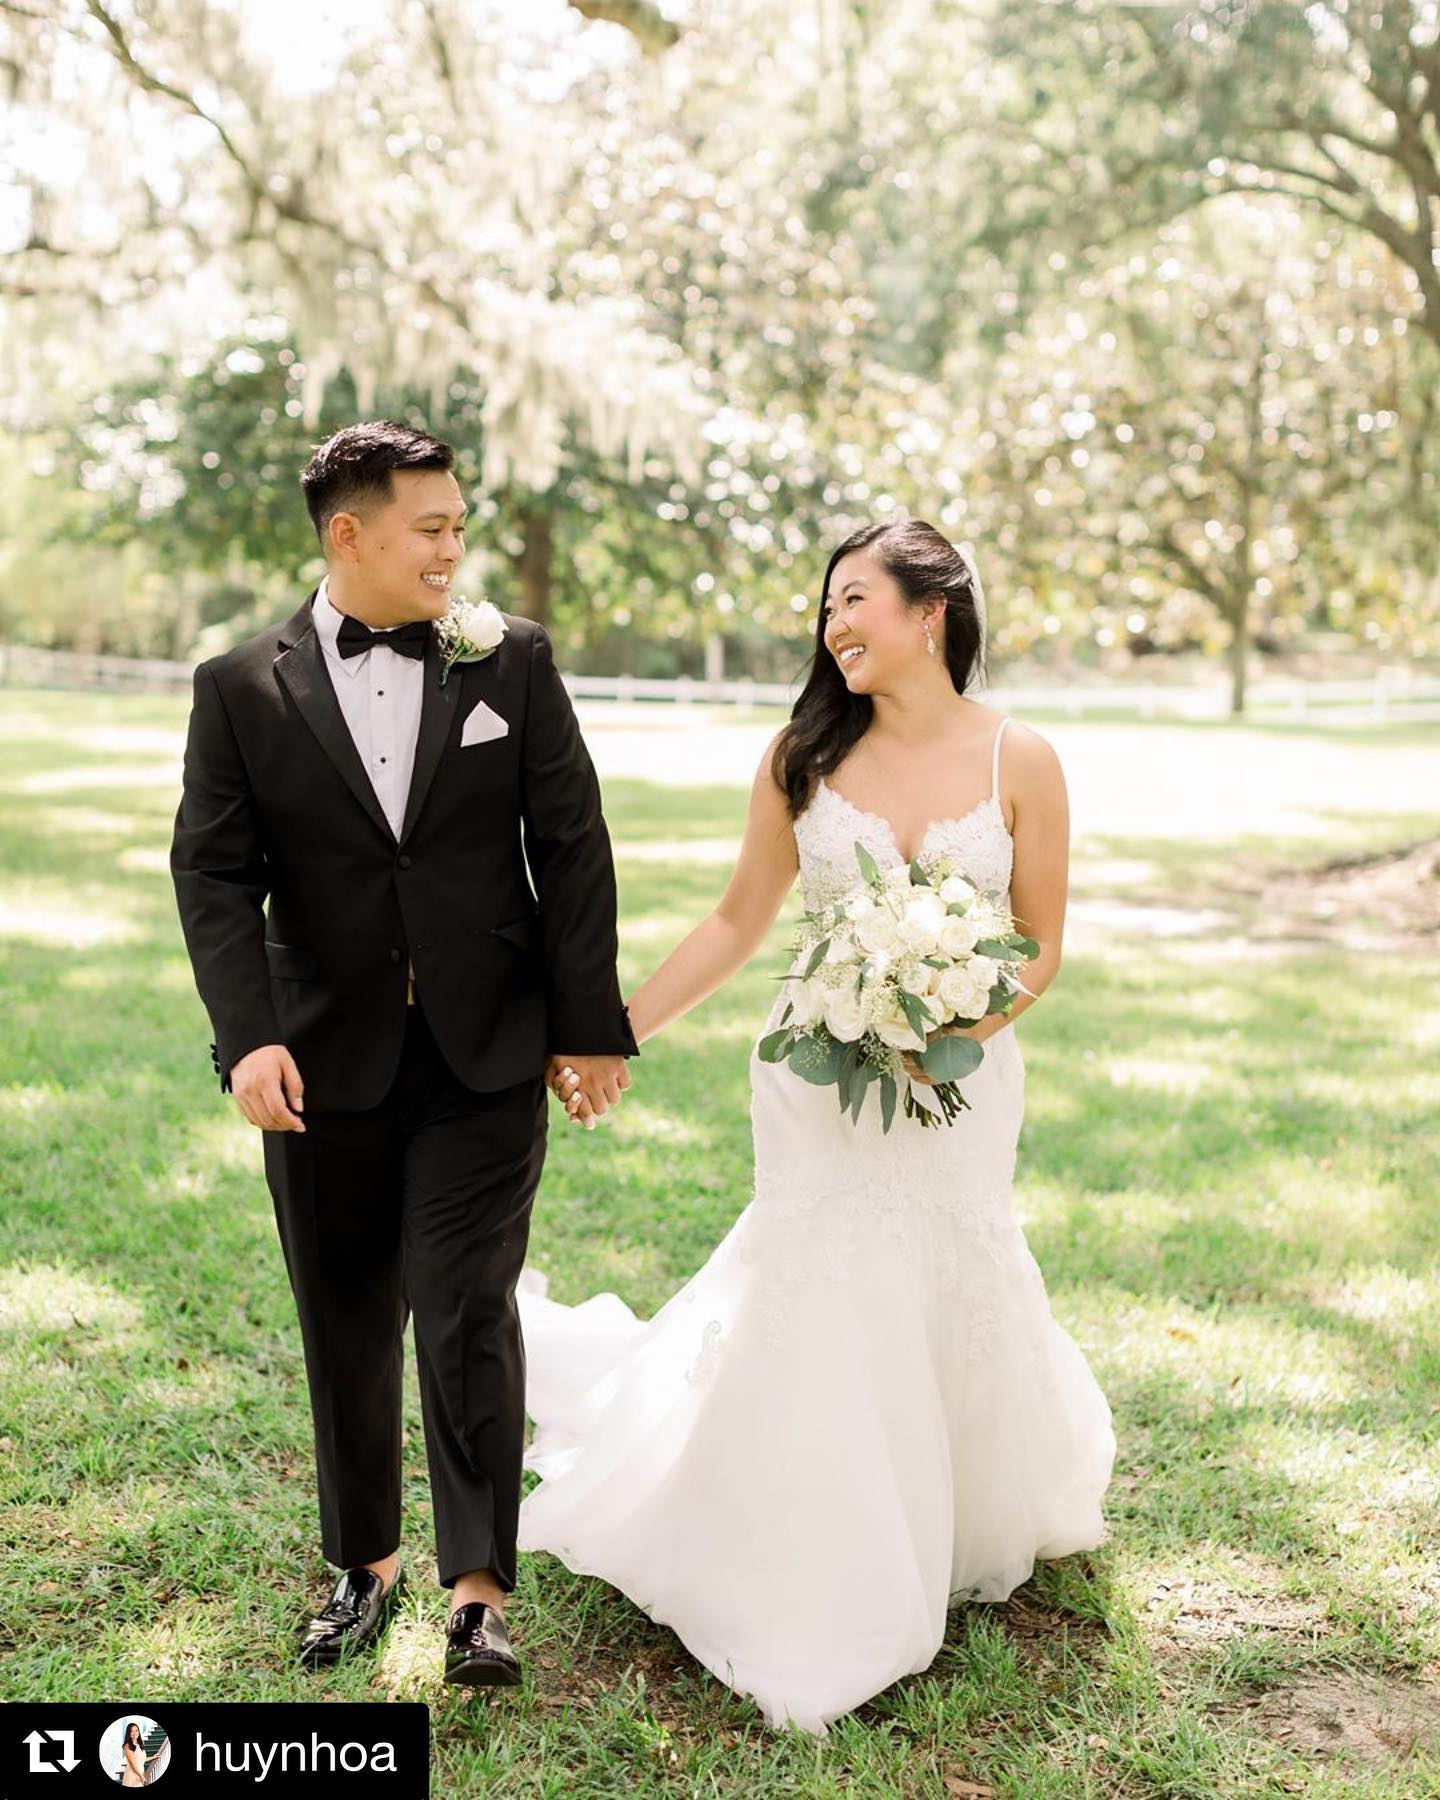 Bride with Groom in classic black tuxedo from Tuxedos to Geaux